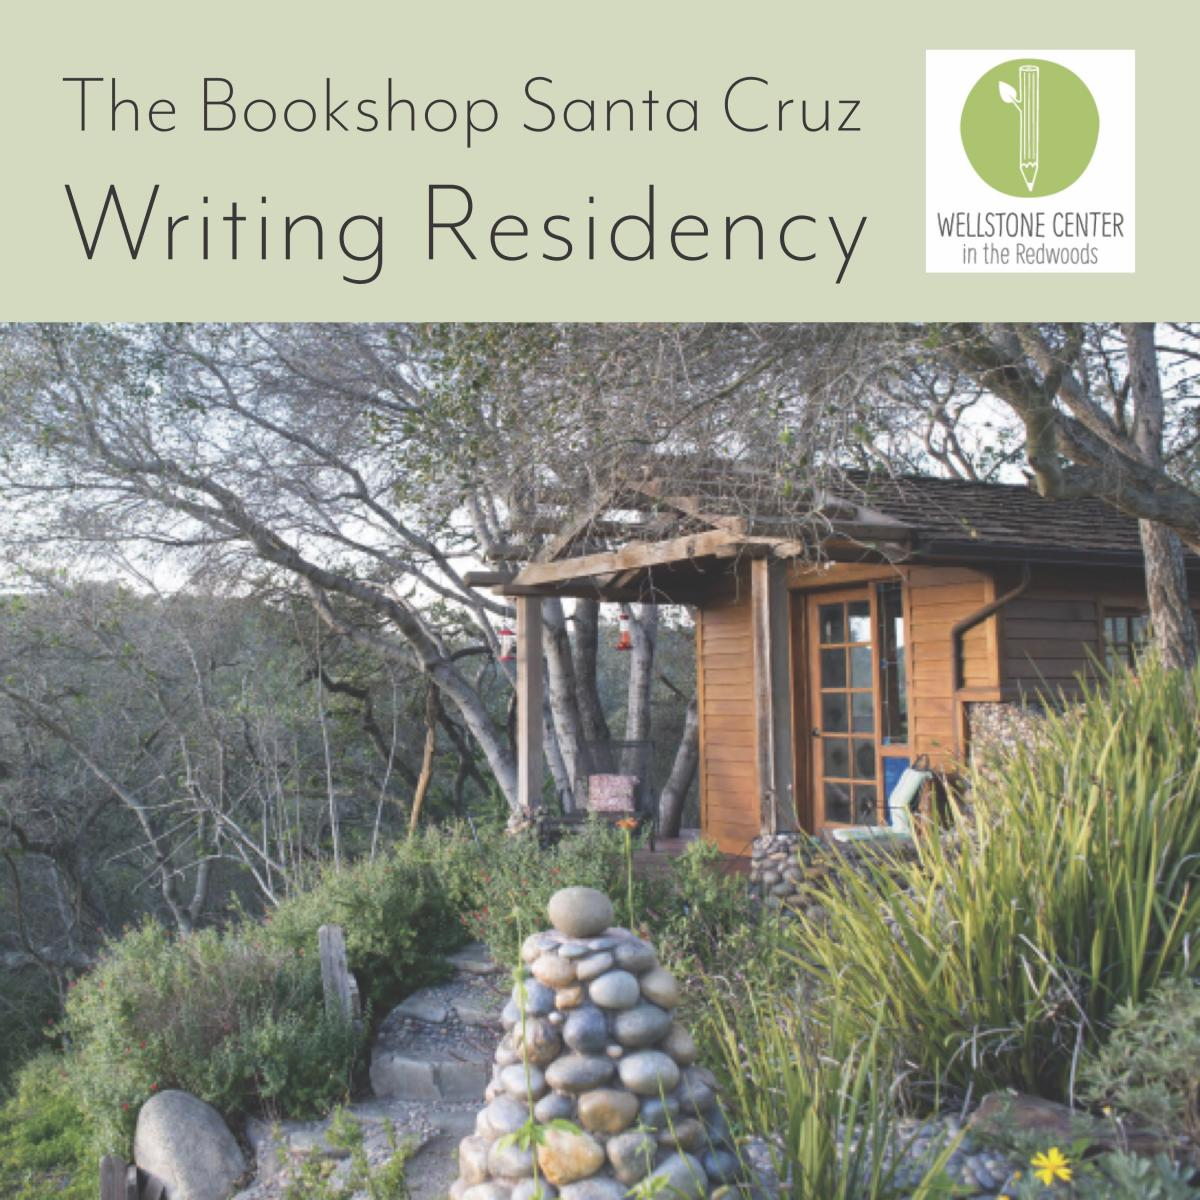 A photo of a building at the Wellstone Center, with the heading The Bookshop Santa Cruz Writing Residency, and the Wellstone Center logo.